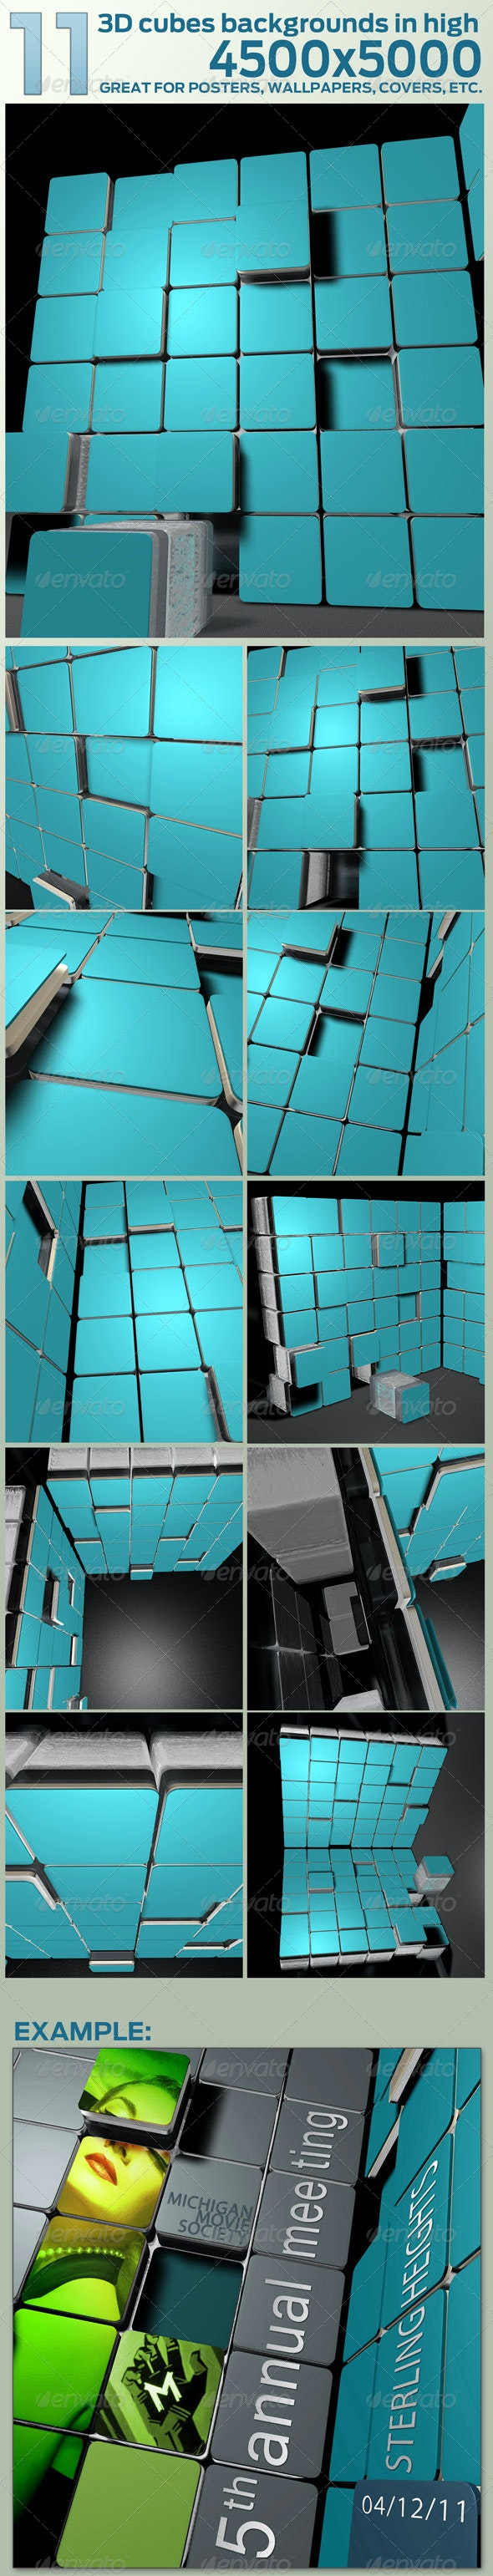 3D Backgrounds in Huge 4500x5000 res. - 3D Backgrounds